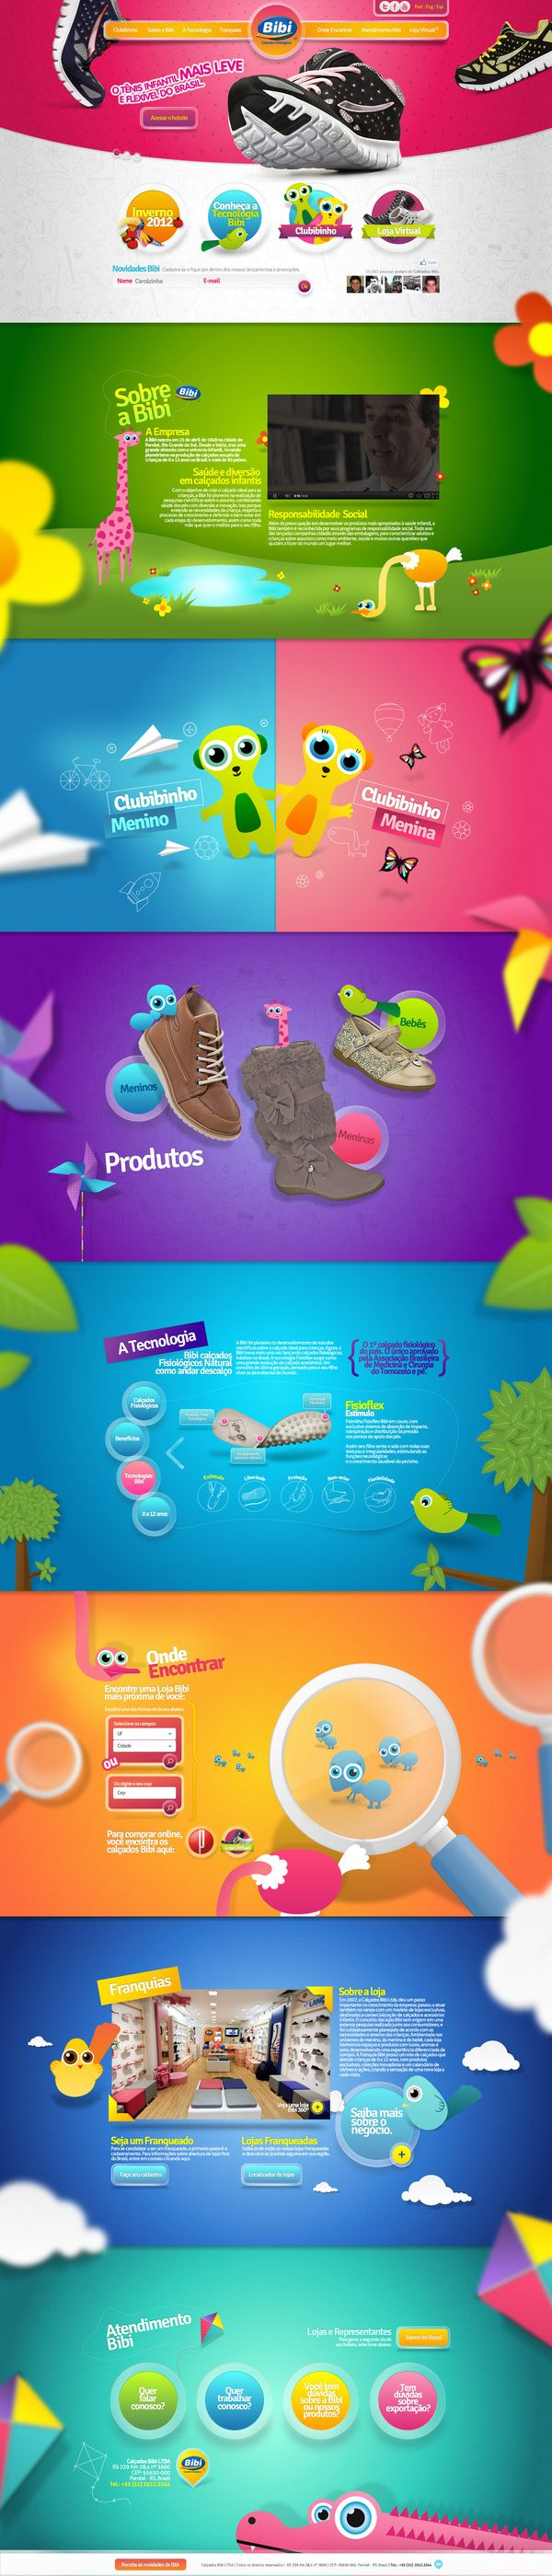 How to design a website for kids - Bibi Cal Ados Colorful One Page Design Webdesign